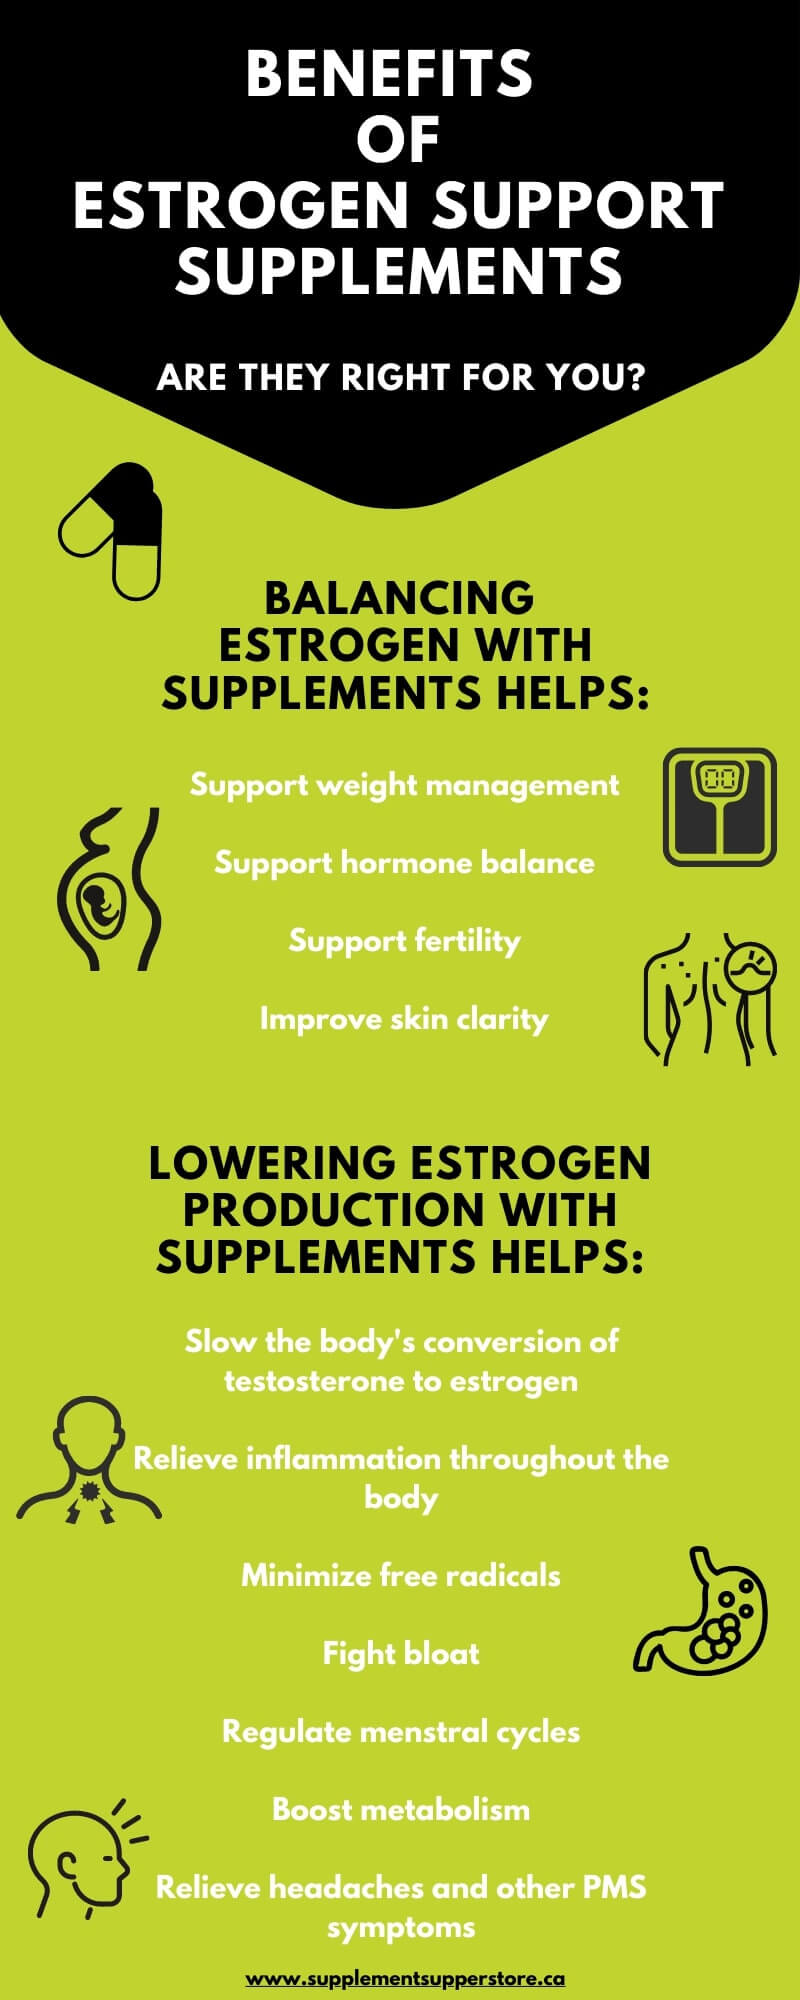 Should I Take Estrogen Support Supplements Infographic